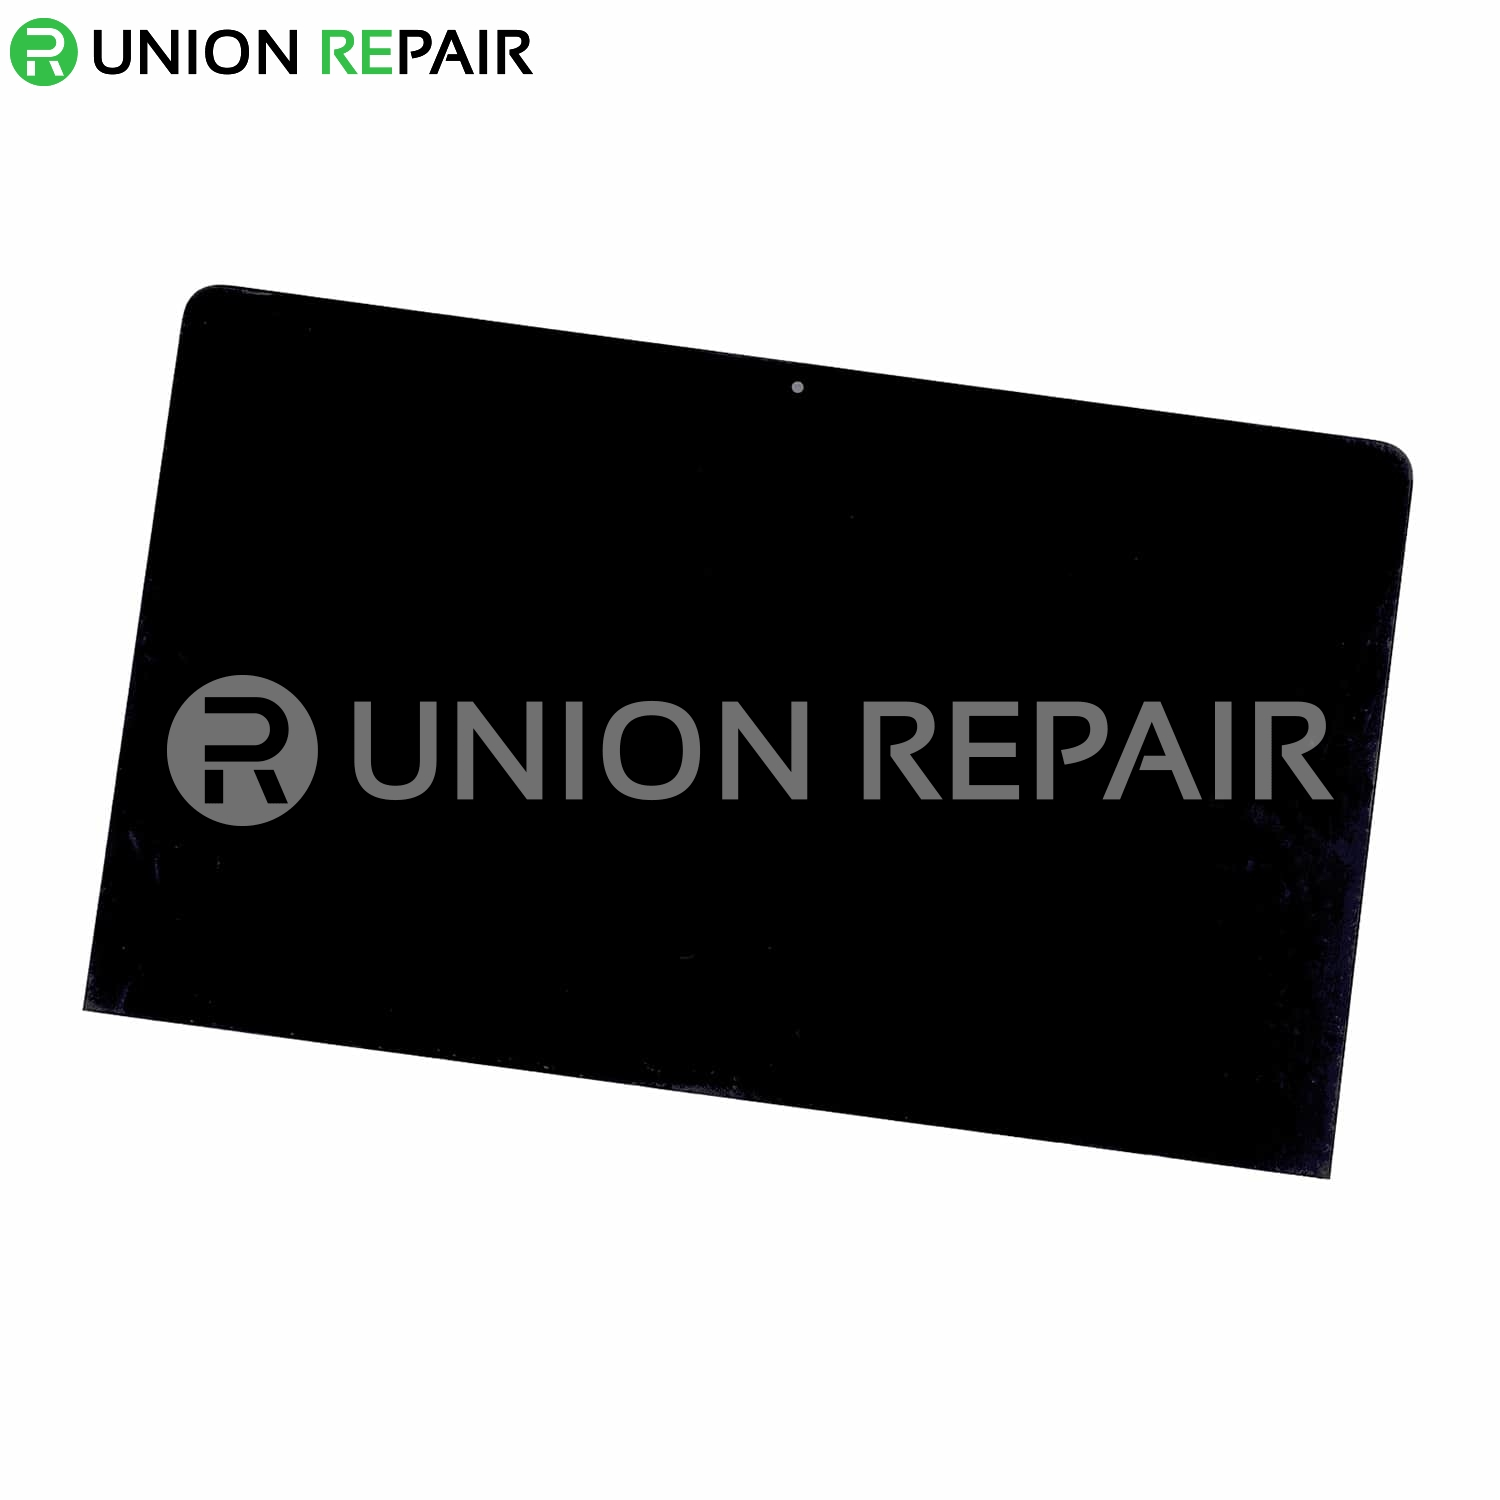 """4K LCD Display Panel + Glass Cover (21.5"""") for iMac Retina 21.5"""" A1418 (Late 2015)"""